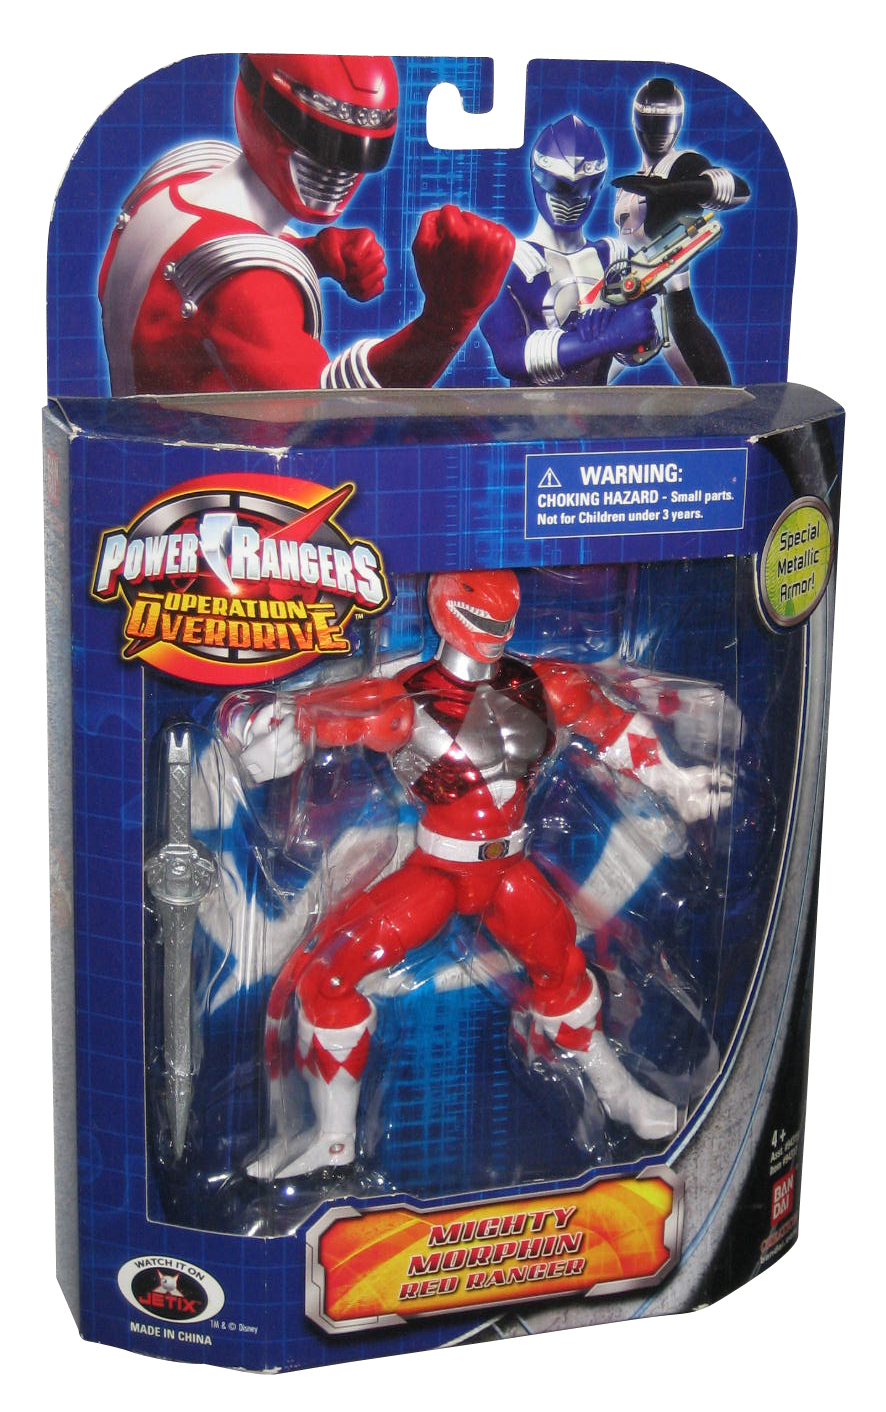 Figurine keychain power rangers operation overdrive bandai 2008 complete series